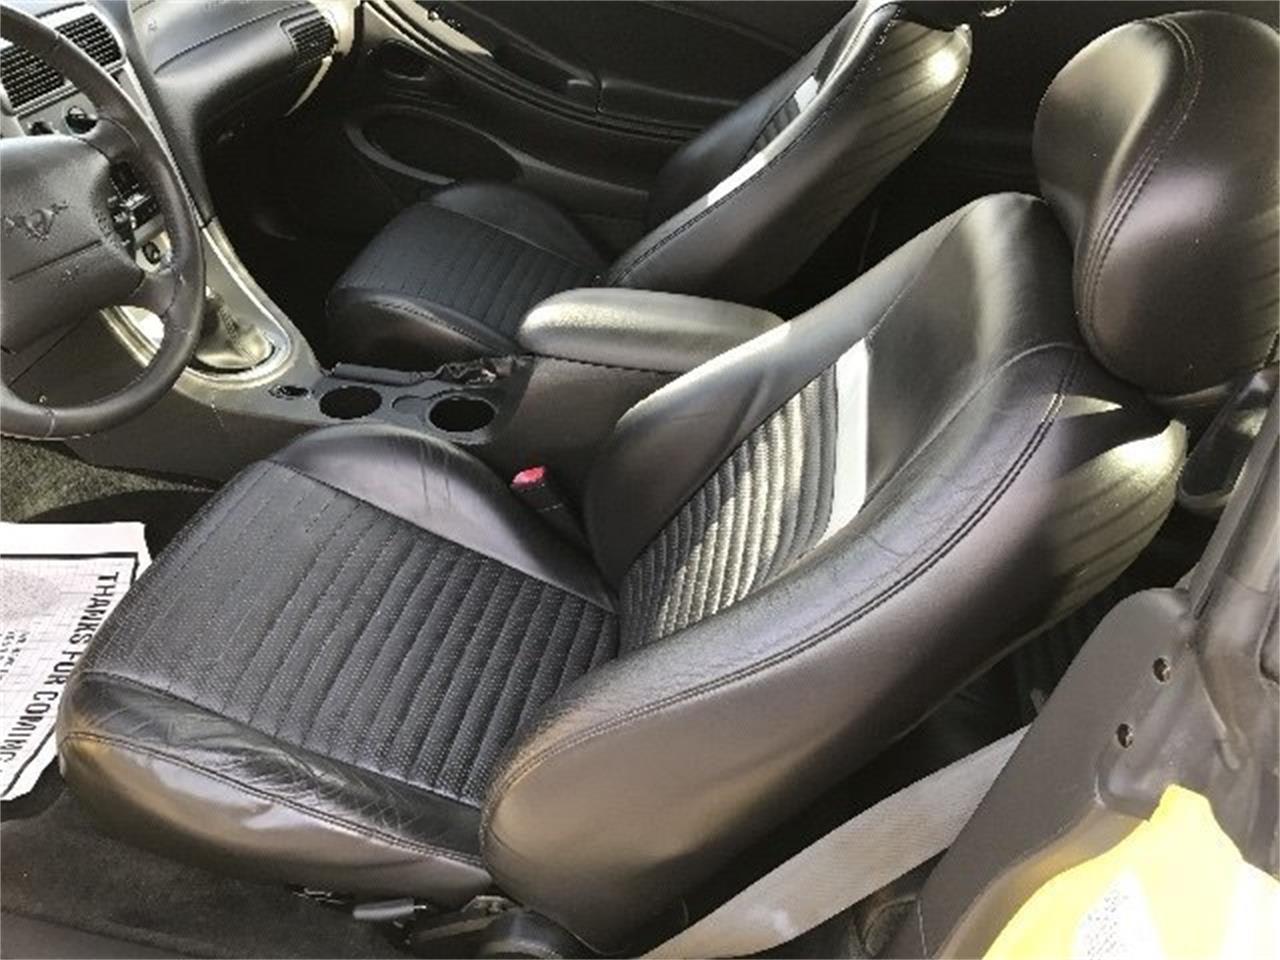 Large Picture of '03 Ford Mustang Mach 1 located in West Babylon New York - $10,900.00 Offered by Hollywood Motors - LDH2